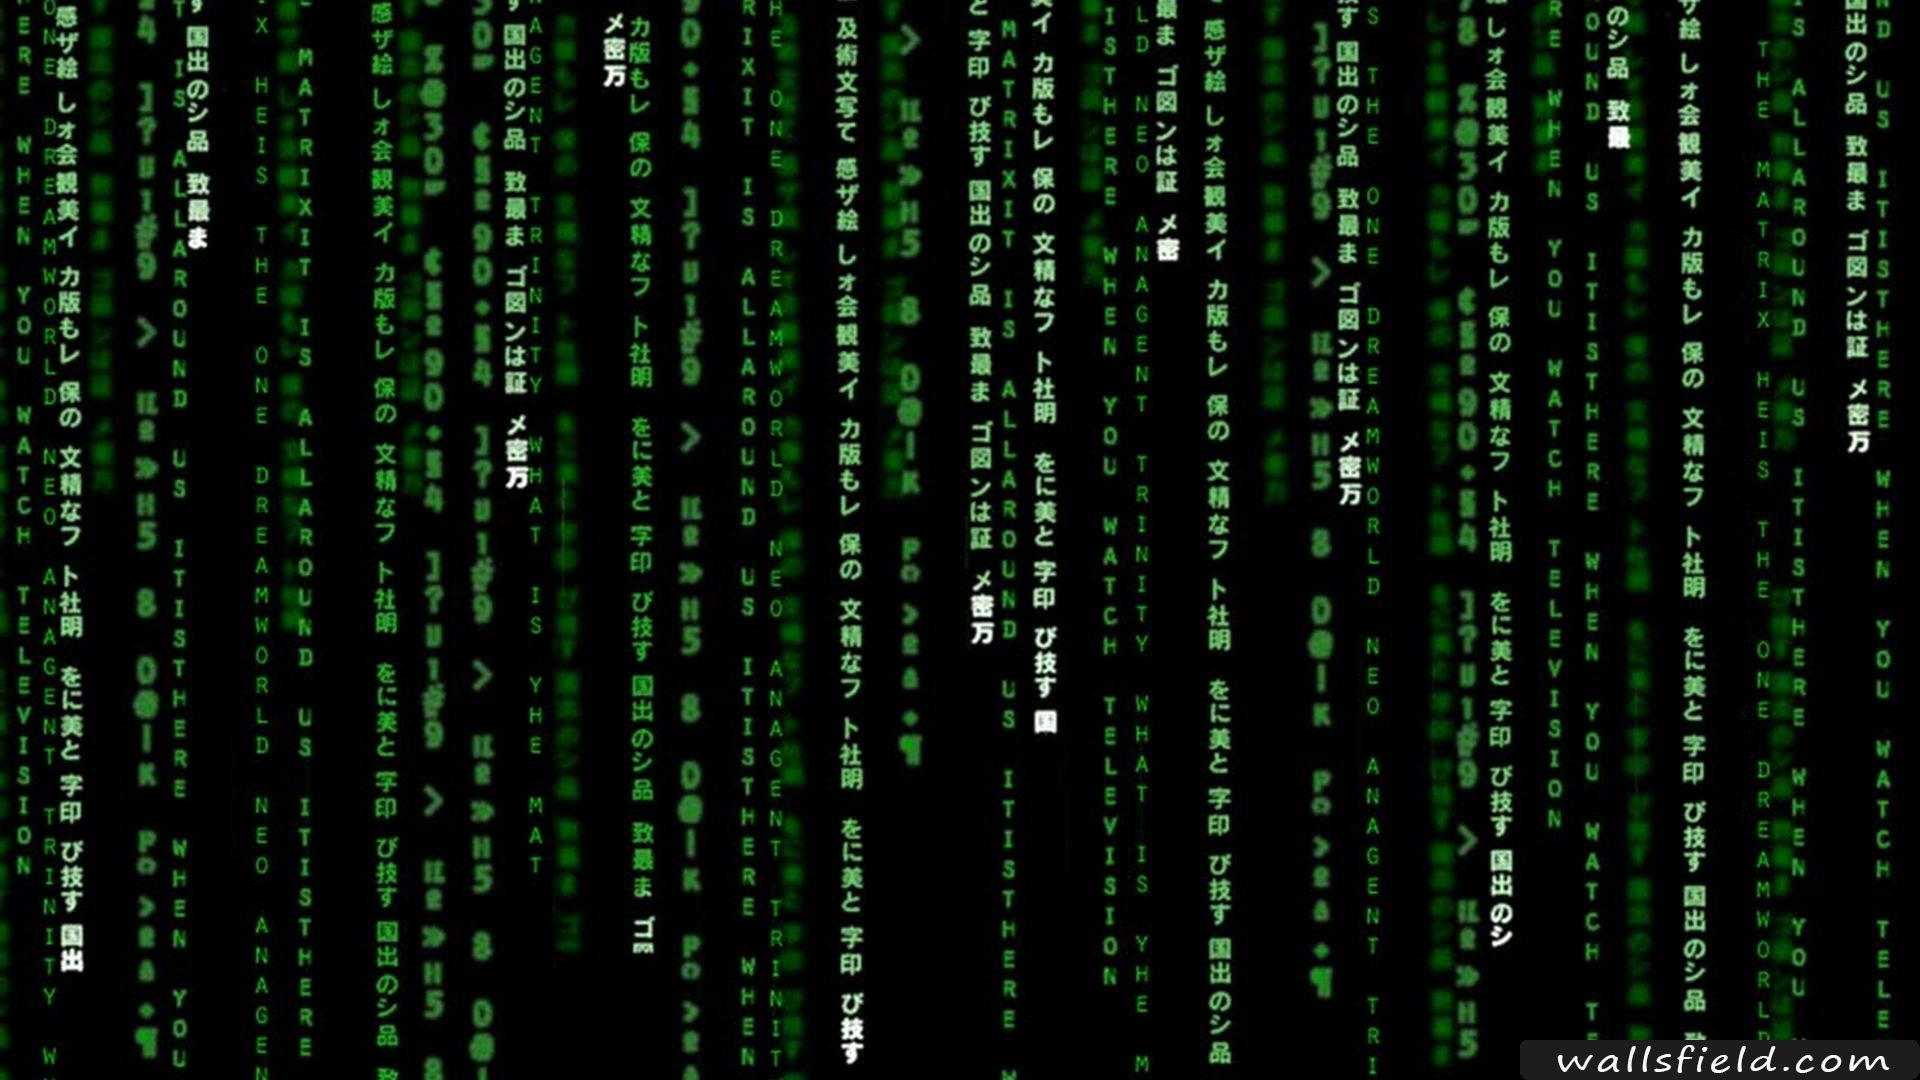 Matrix free hd wallpapers hd wallpaper and desktop backgrounds you can view download and comment on matrix free hd wallpapers for your desktop backgrounds mobile and tablet in different resolutions voltagebd Gallery